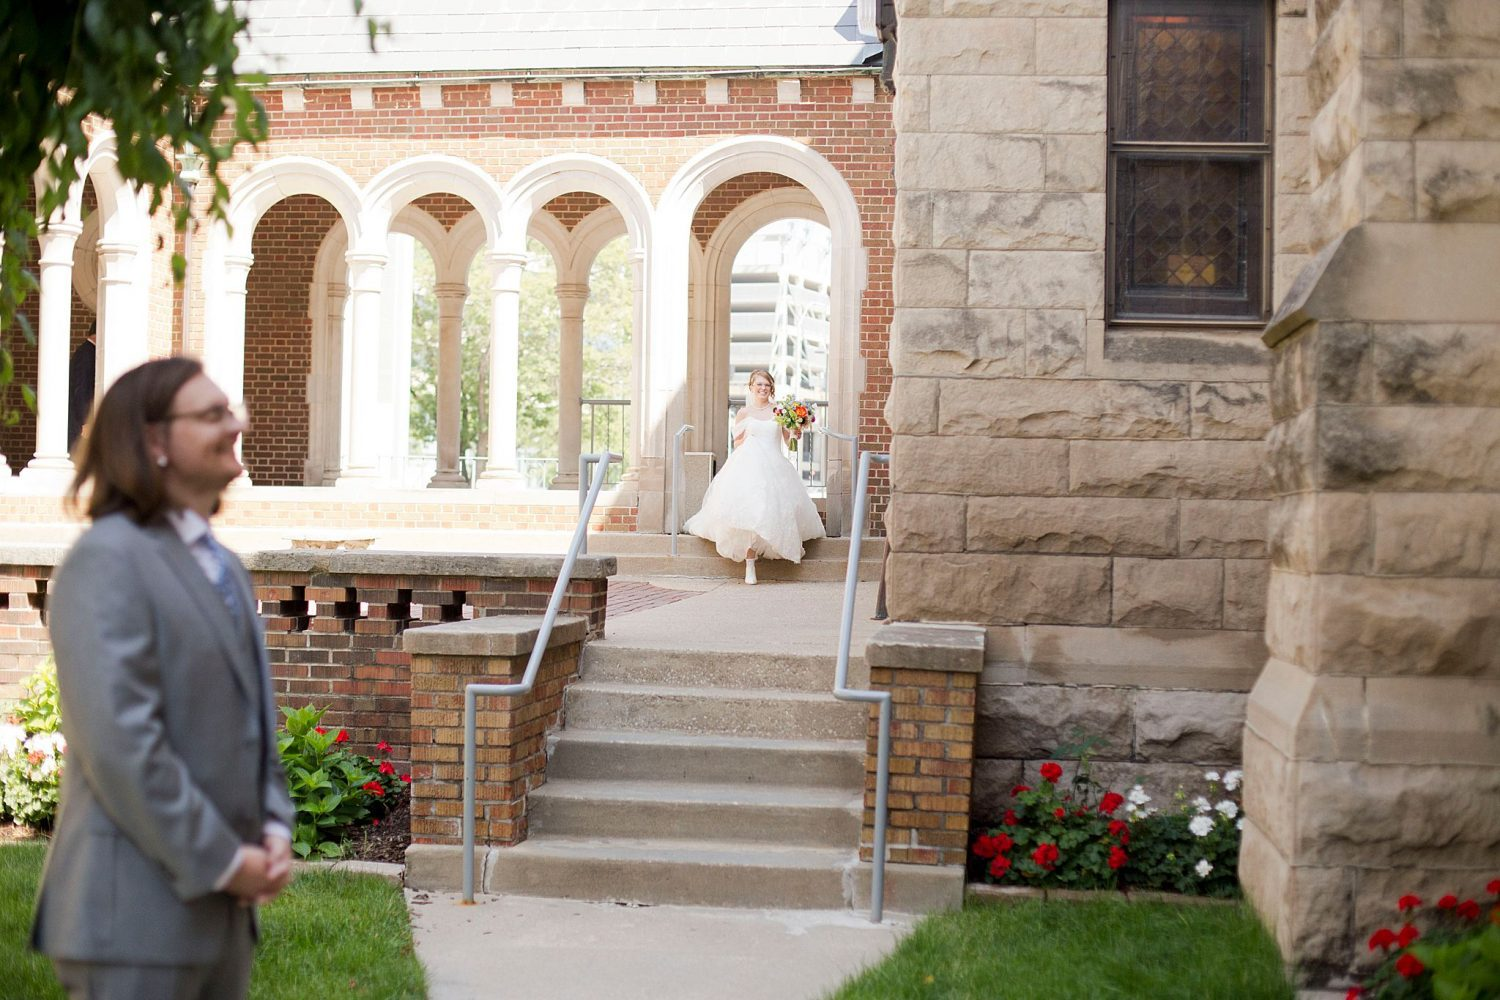 The groom waits in the courtyard of St Ambrose Cathedral in Des Moines as he waits to see his bride for the first time.